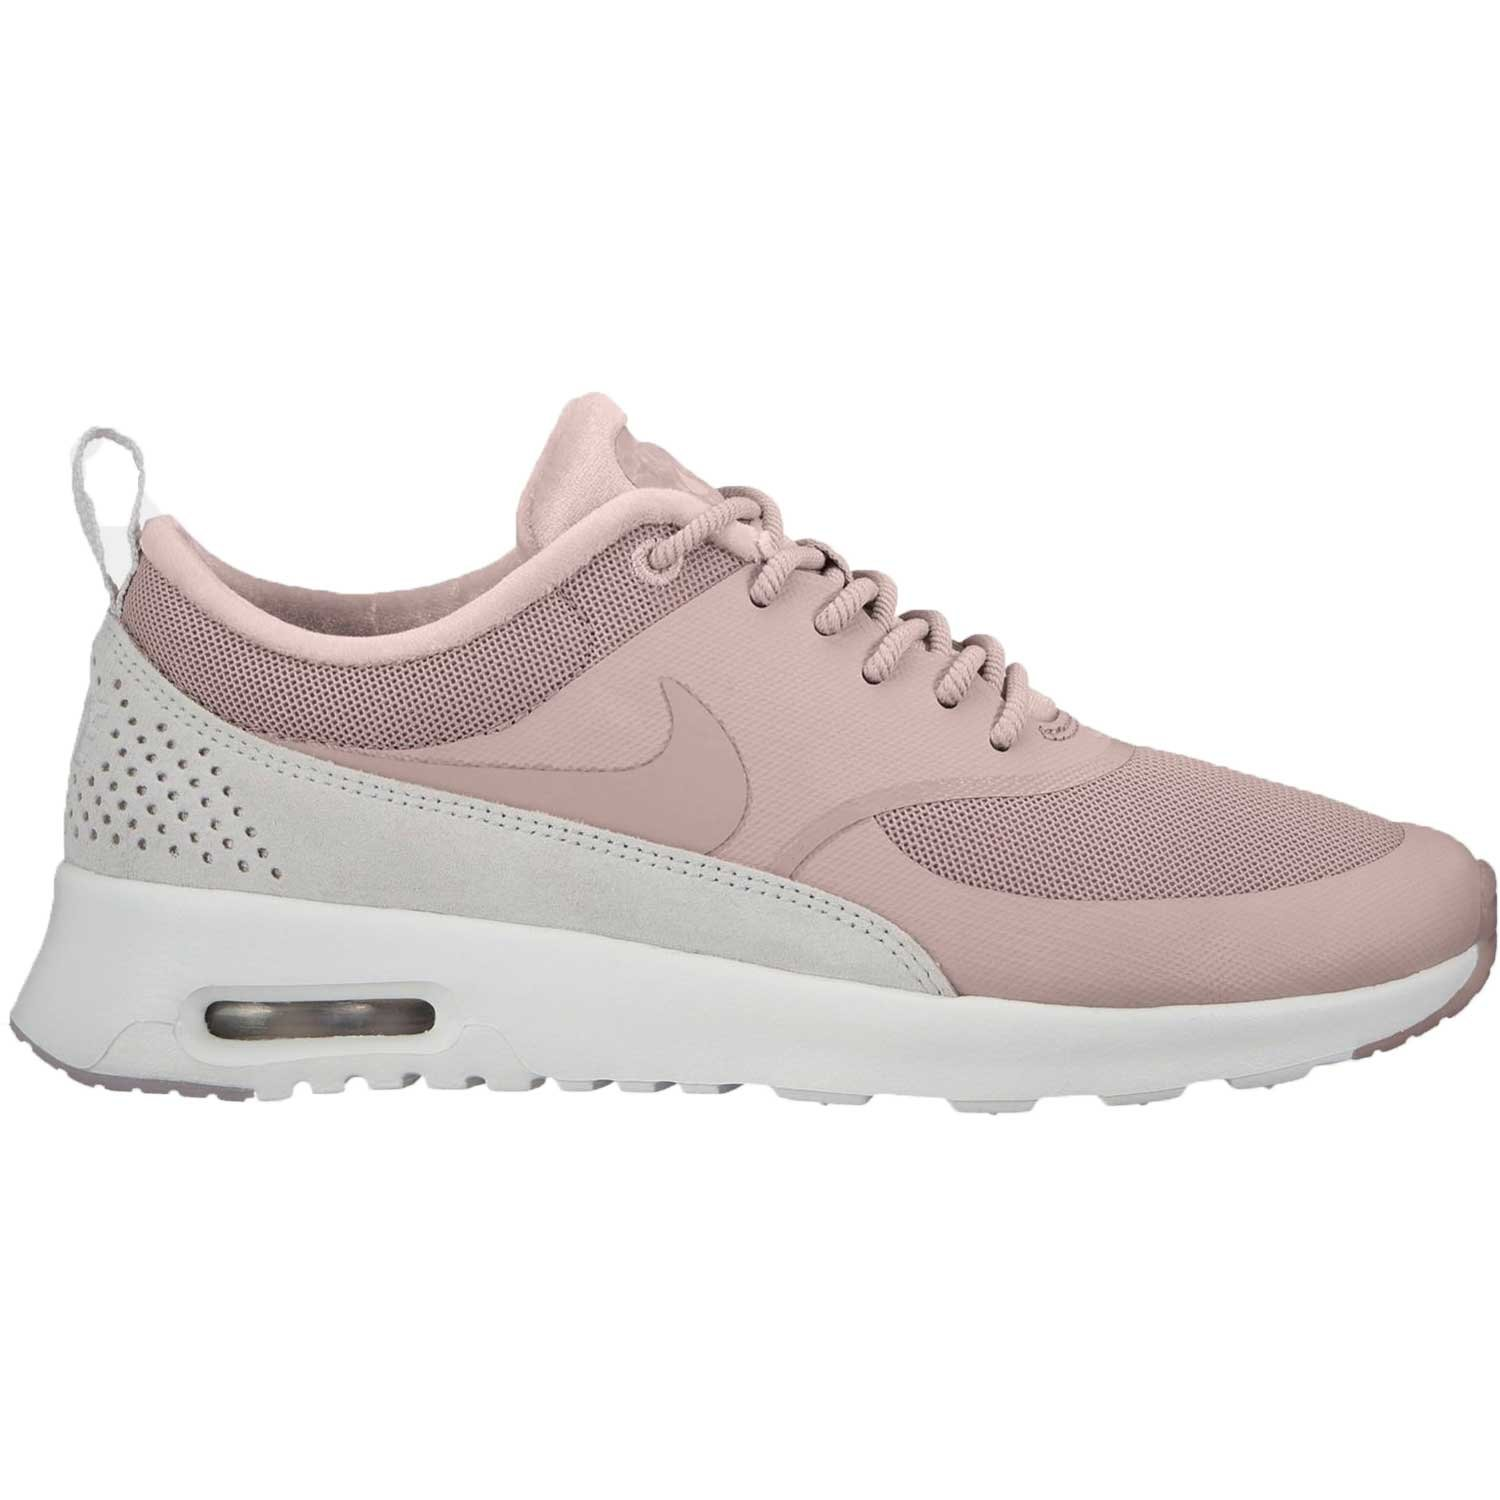 NIKE Women's Wmns Air Max Thea LX, Particle Rose/Particle Rose, 8.5 US